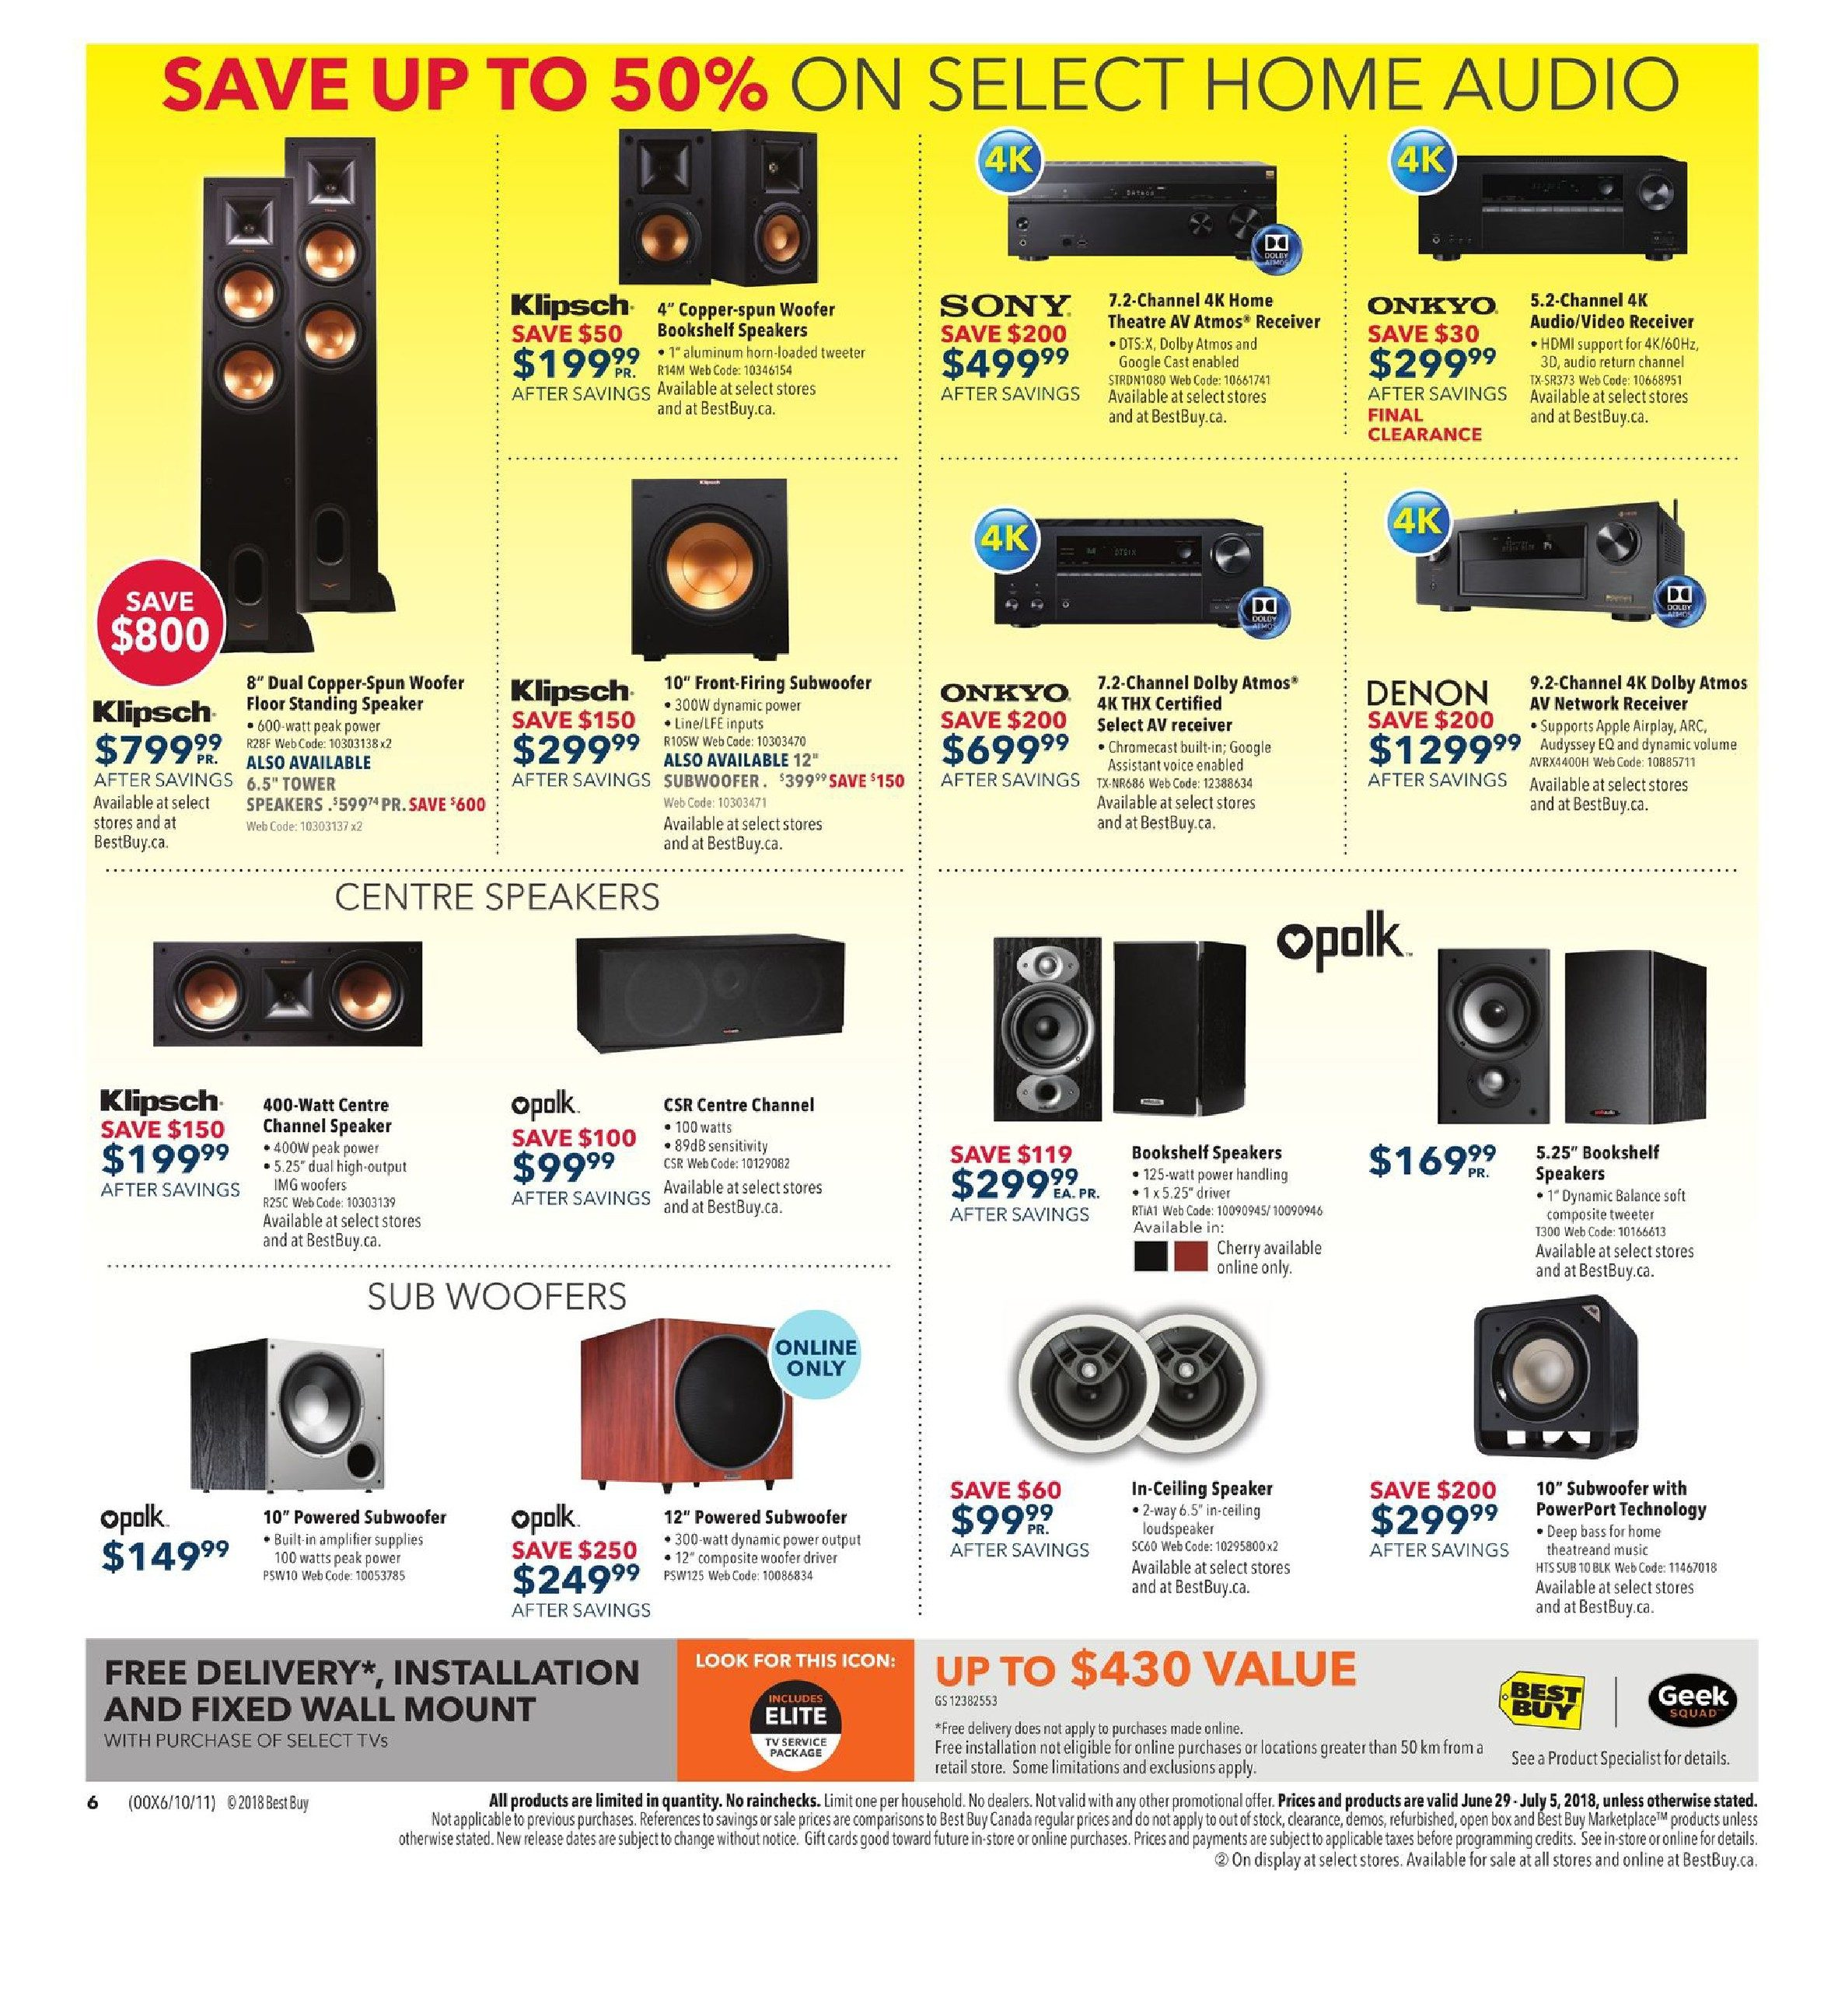 Best buy weekly flyer weekly boxing day in july sale jun 29 best buy weekly flyer weekly boxing day in july sale jun 29 jul 5 redflagdeals fandeluxe Image collections